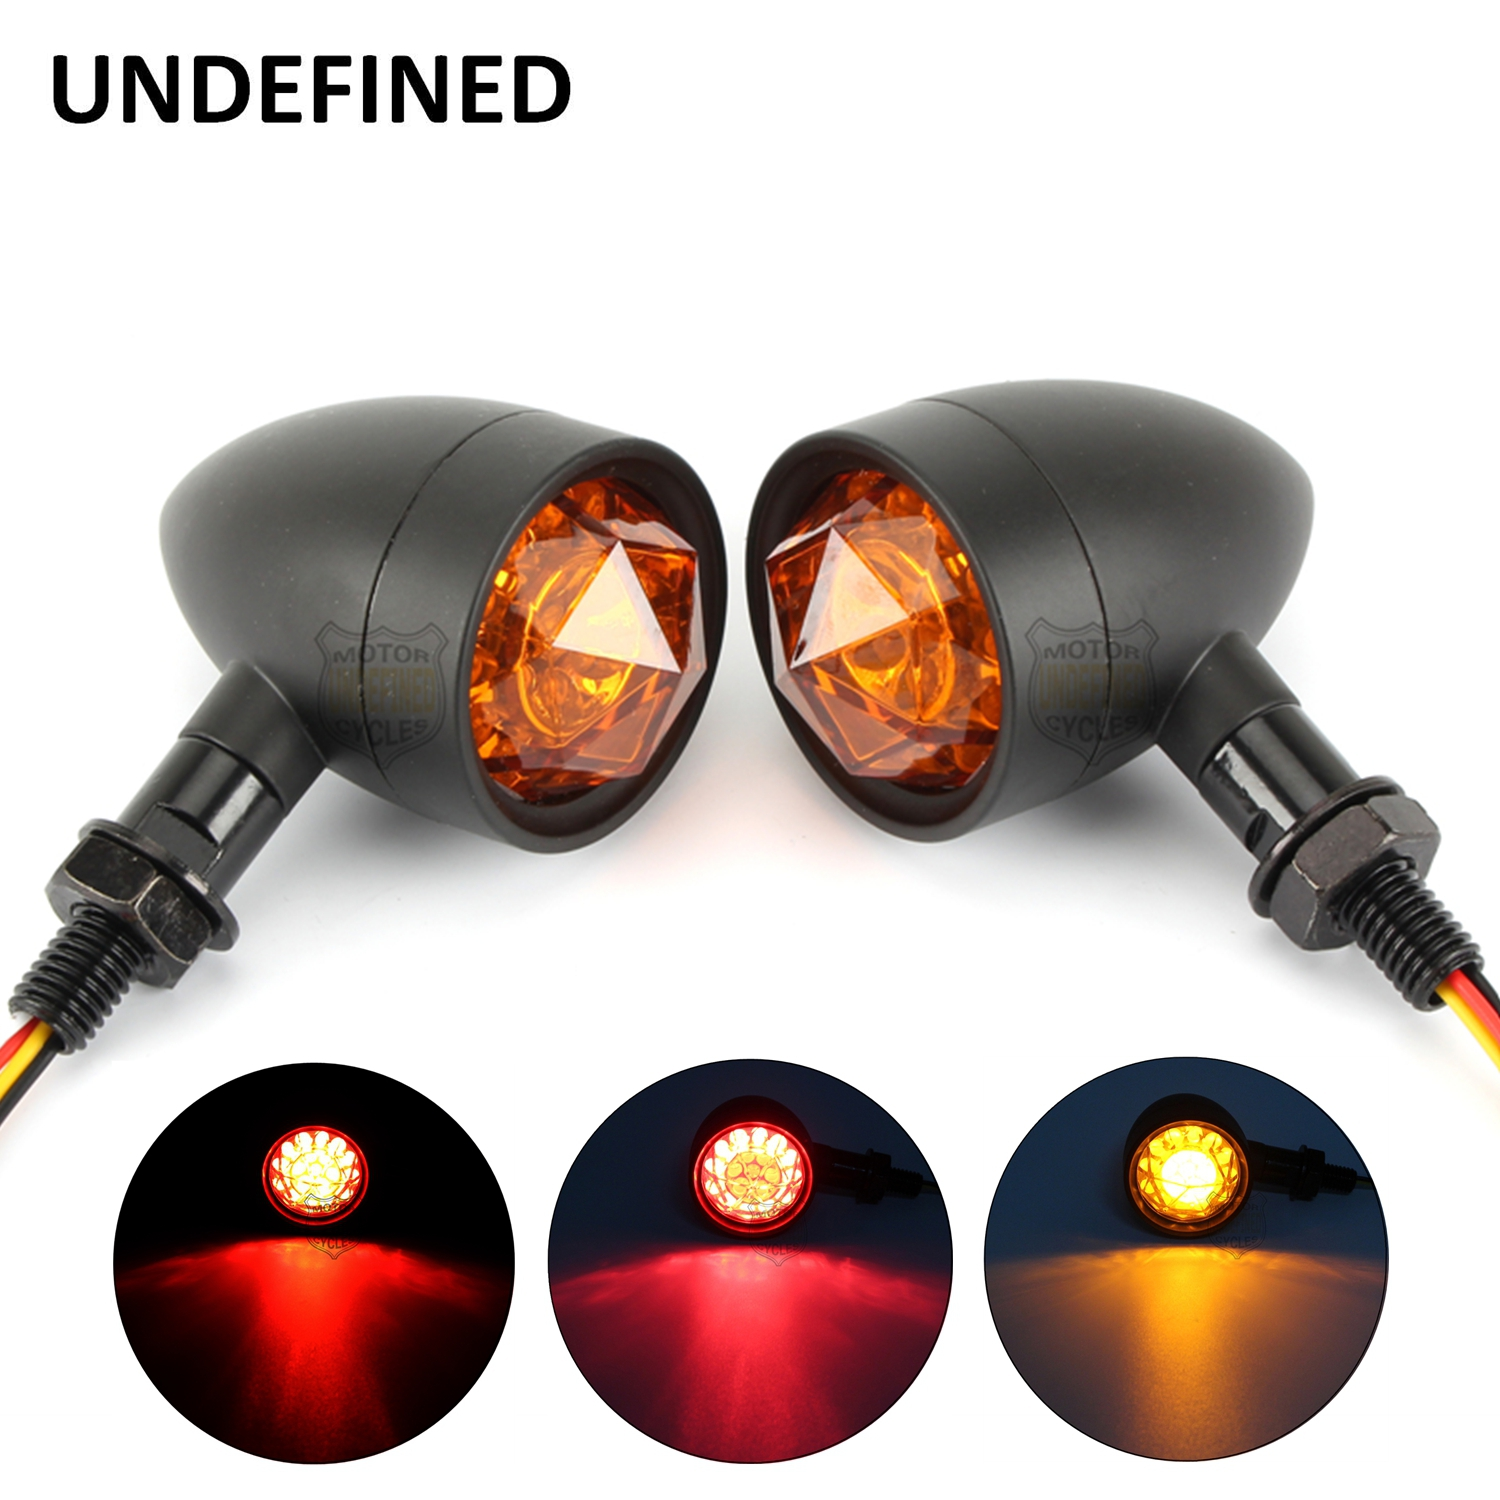 Black Motorcycle Diamond Lens LED Turn Signal Indicator Light Amber For Honda Kawasaki Yamaha Suzuki Chopper Universal10mm